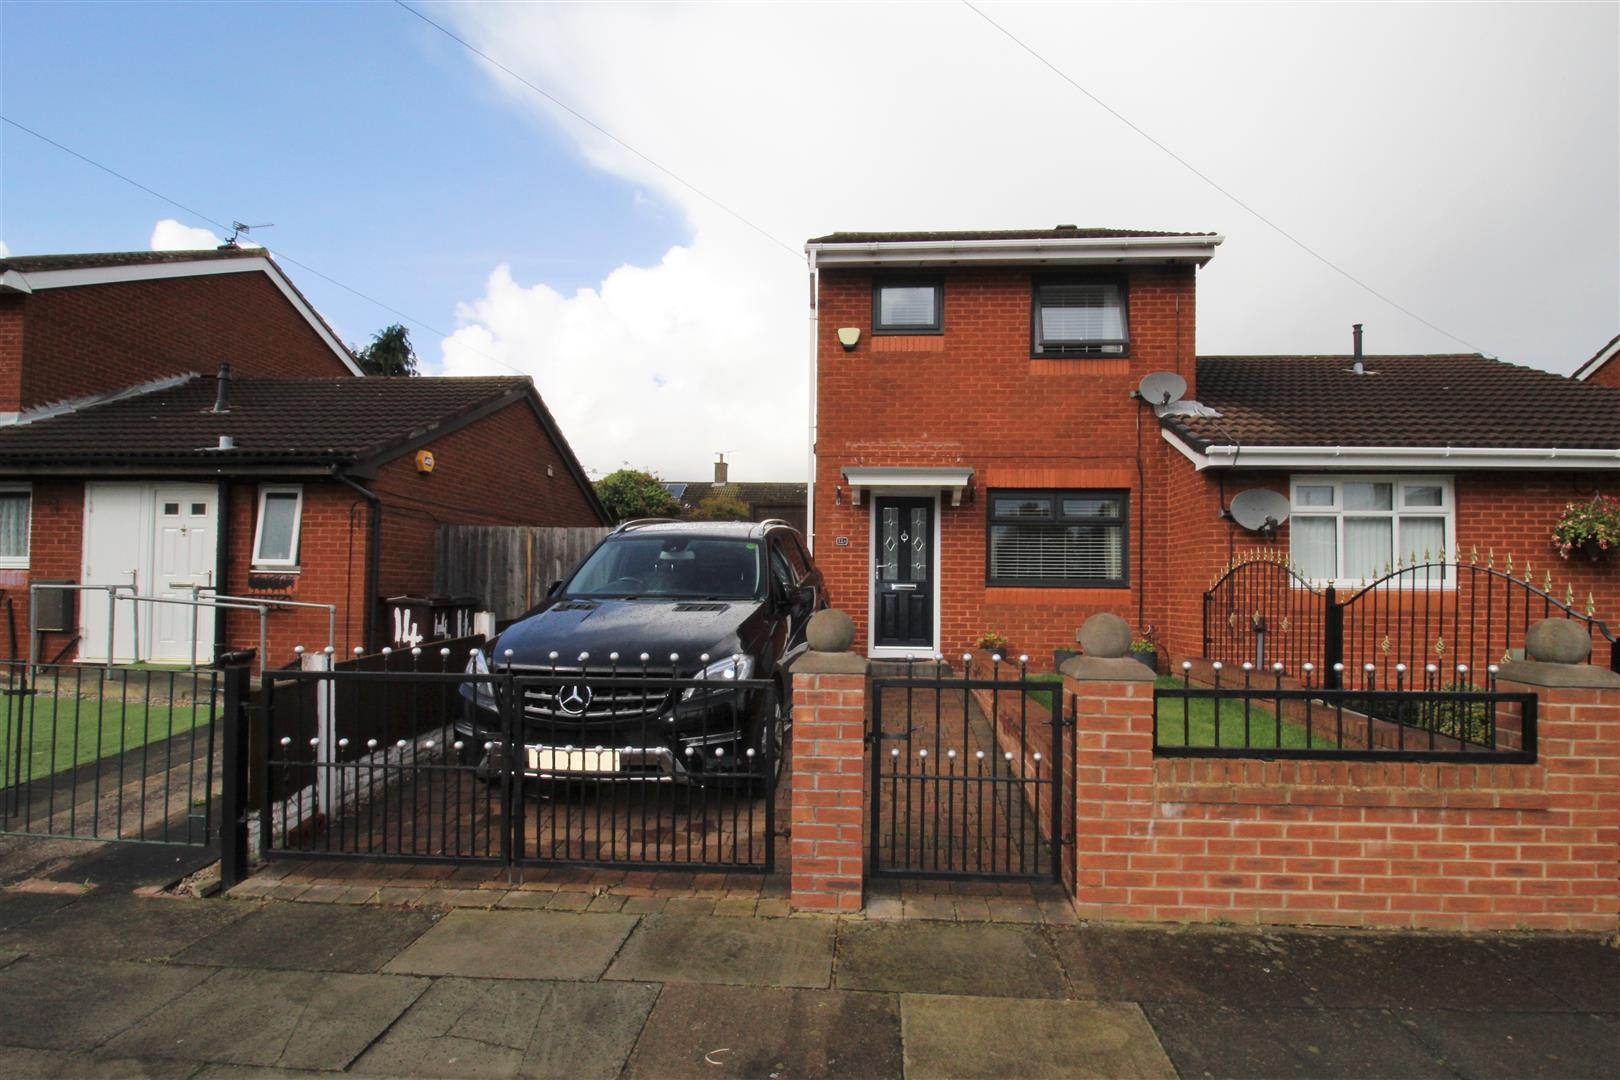 2 Bedrooms, House - Semi-Detached, Elstead Road, Kirkby, Liverpool